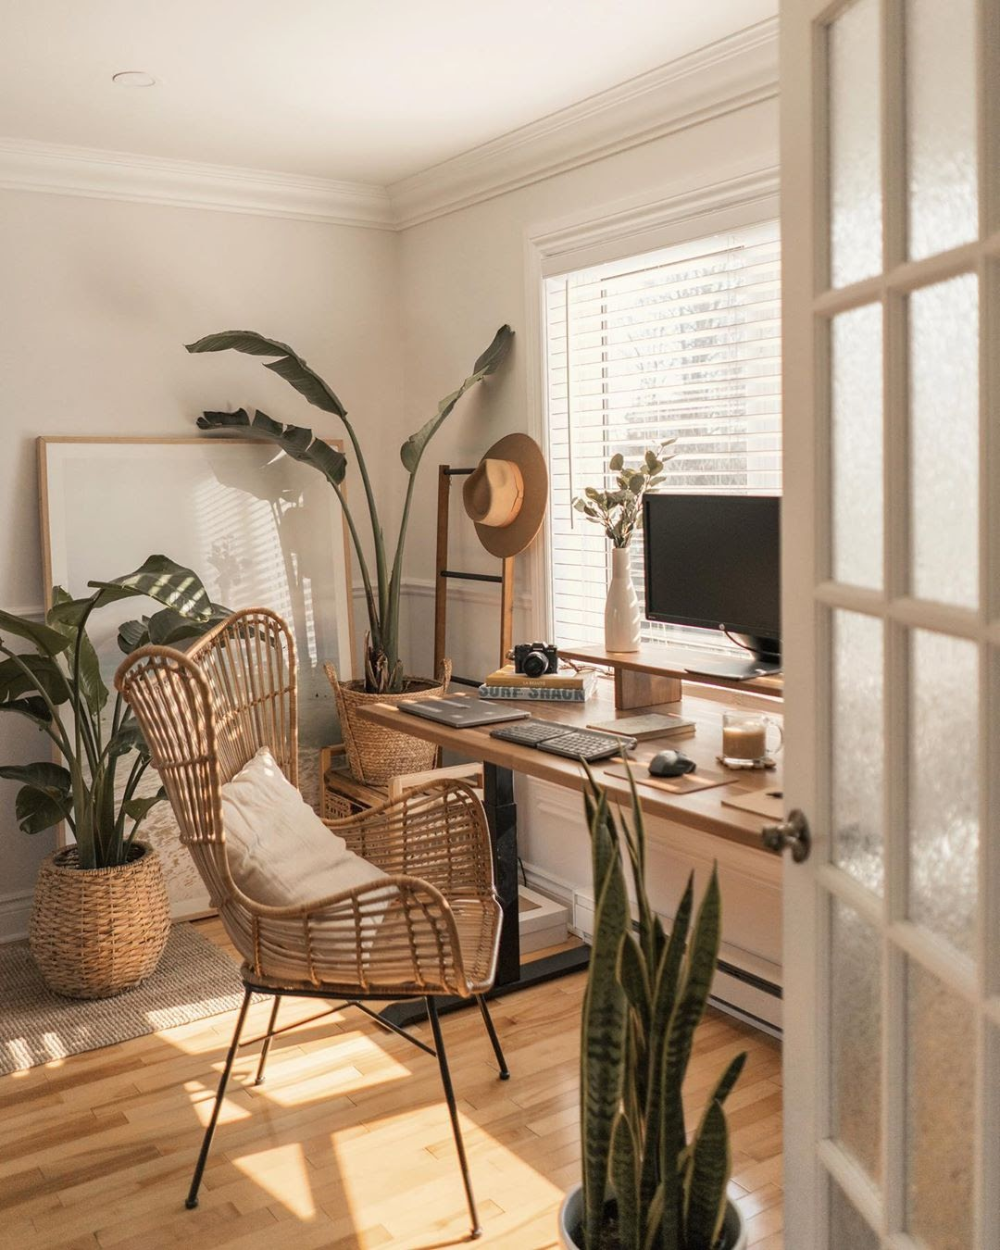 Interior trends taking Instagram by storm